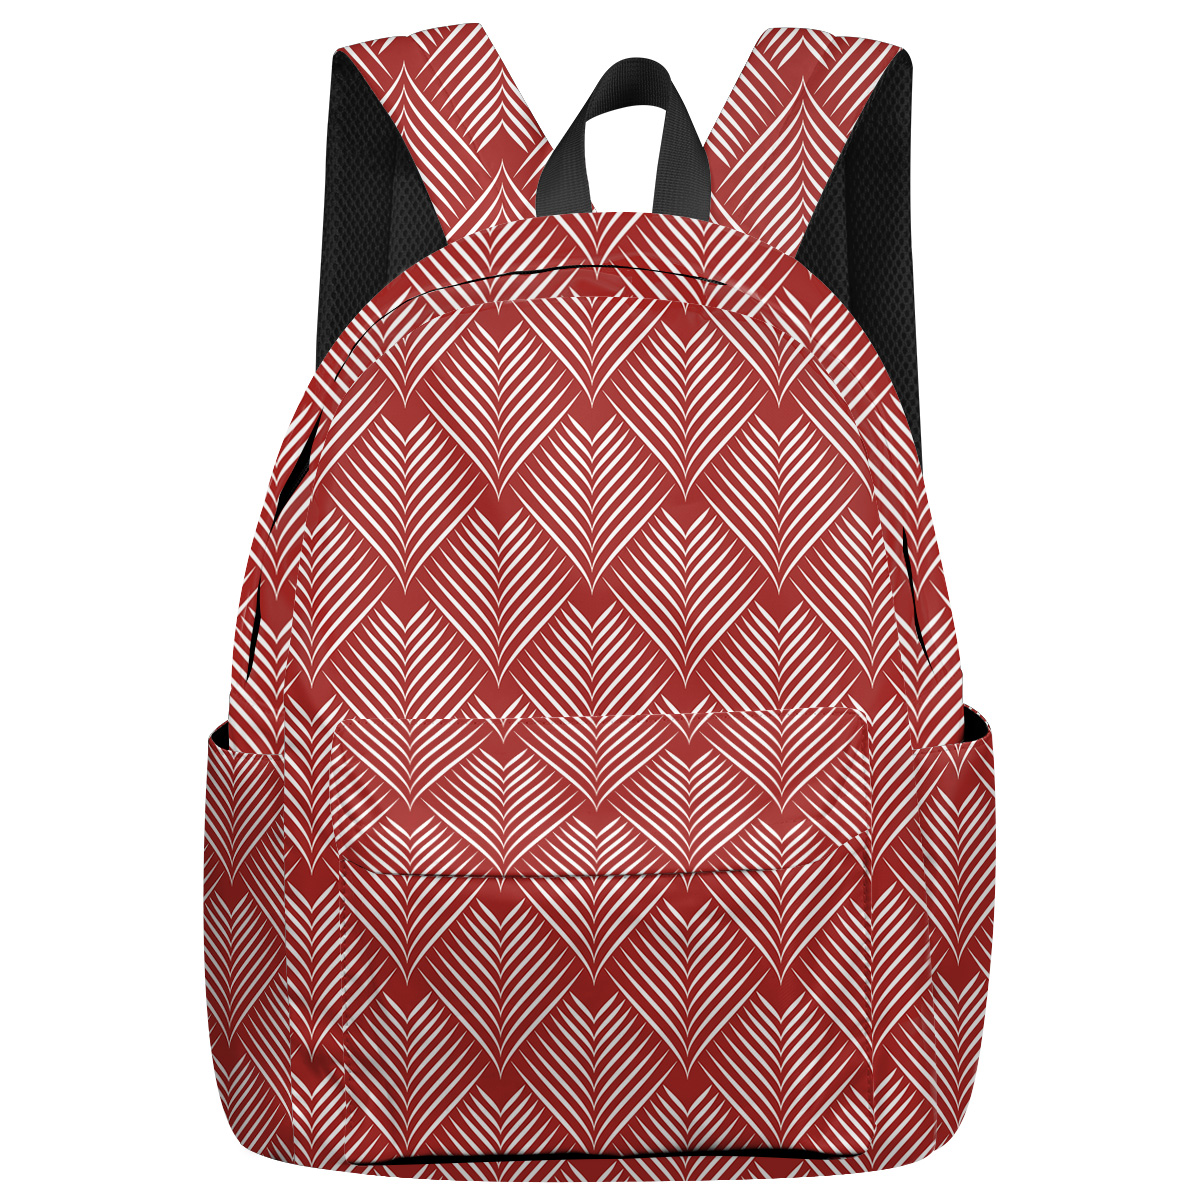 A Herringbone International Airplane Travel Night Light Reflective Tactical Backpacks Shoes Compartment College Backpacks